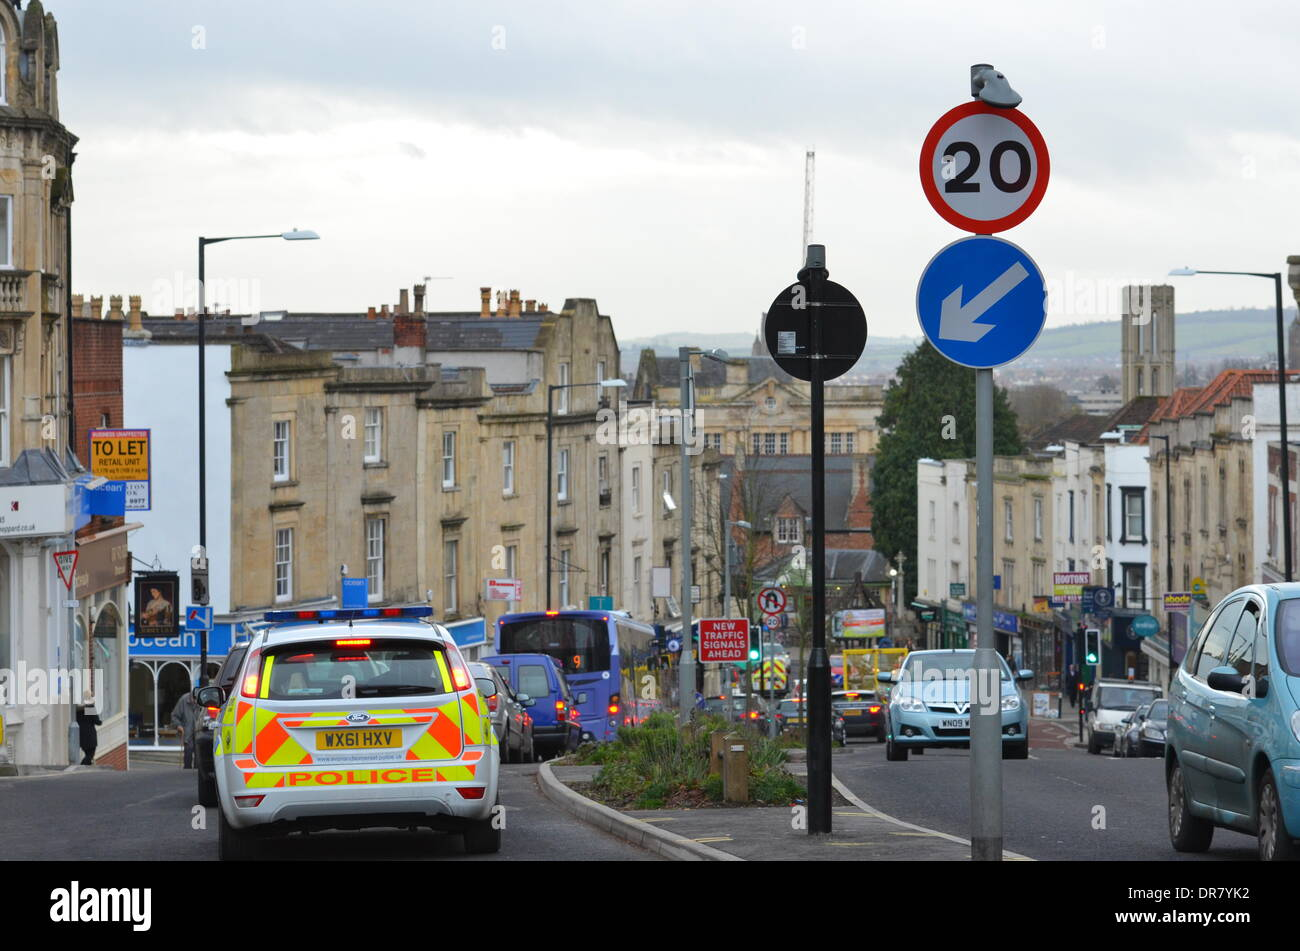 Bristol, UK. 21st January 2014. 20mph speed limits which are enforceable came into effect this morning in the City of Bristol. Credit:  Robert Timoney/Alamy Live News Stock Photo